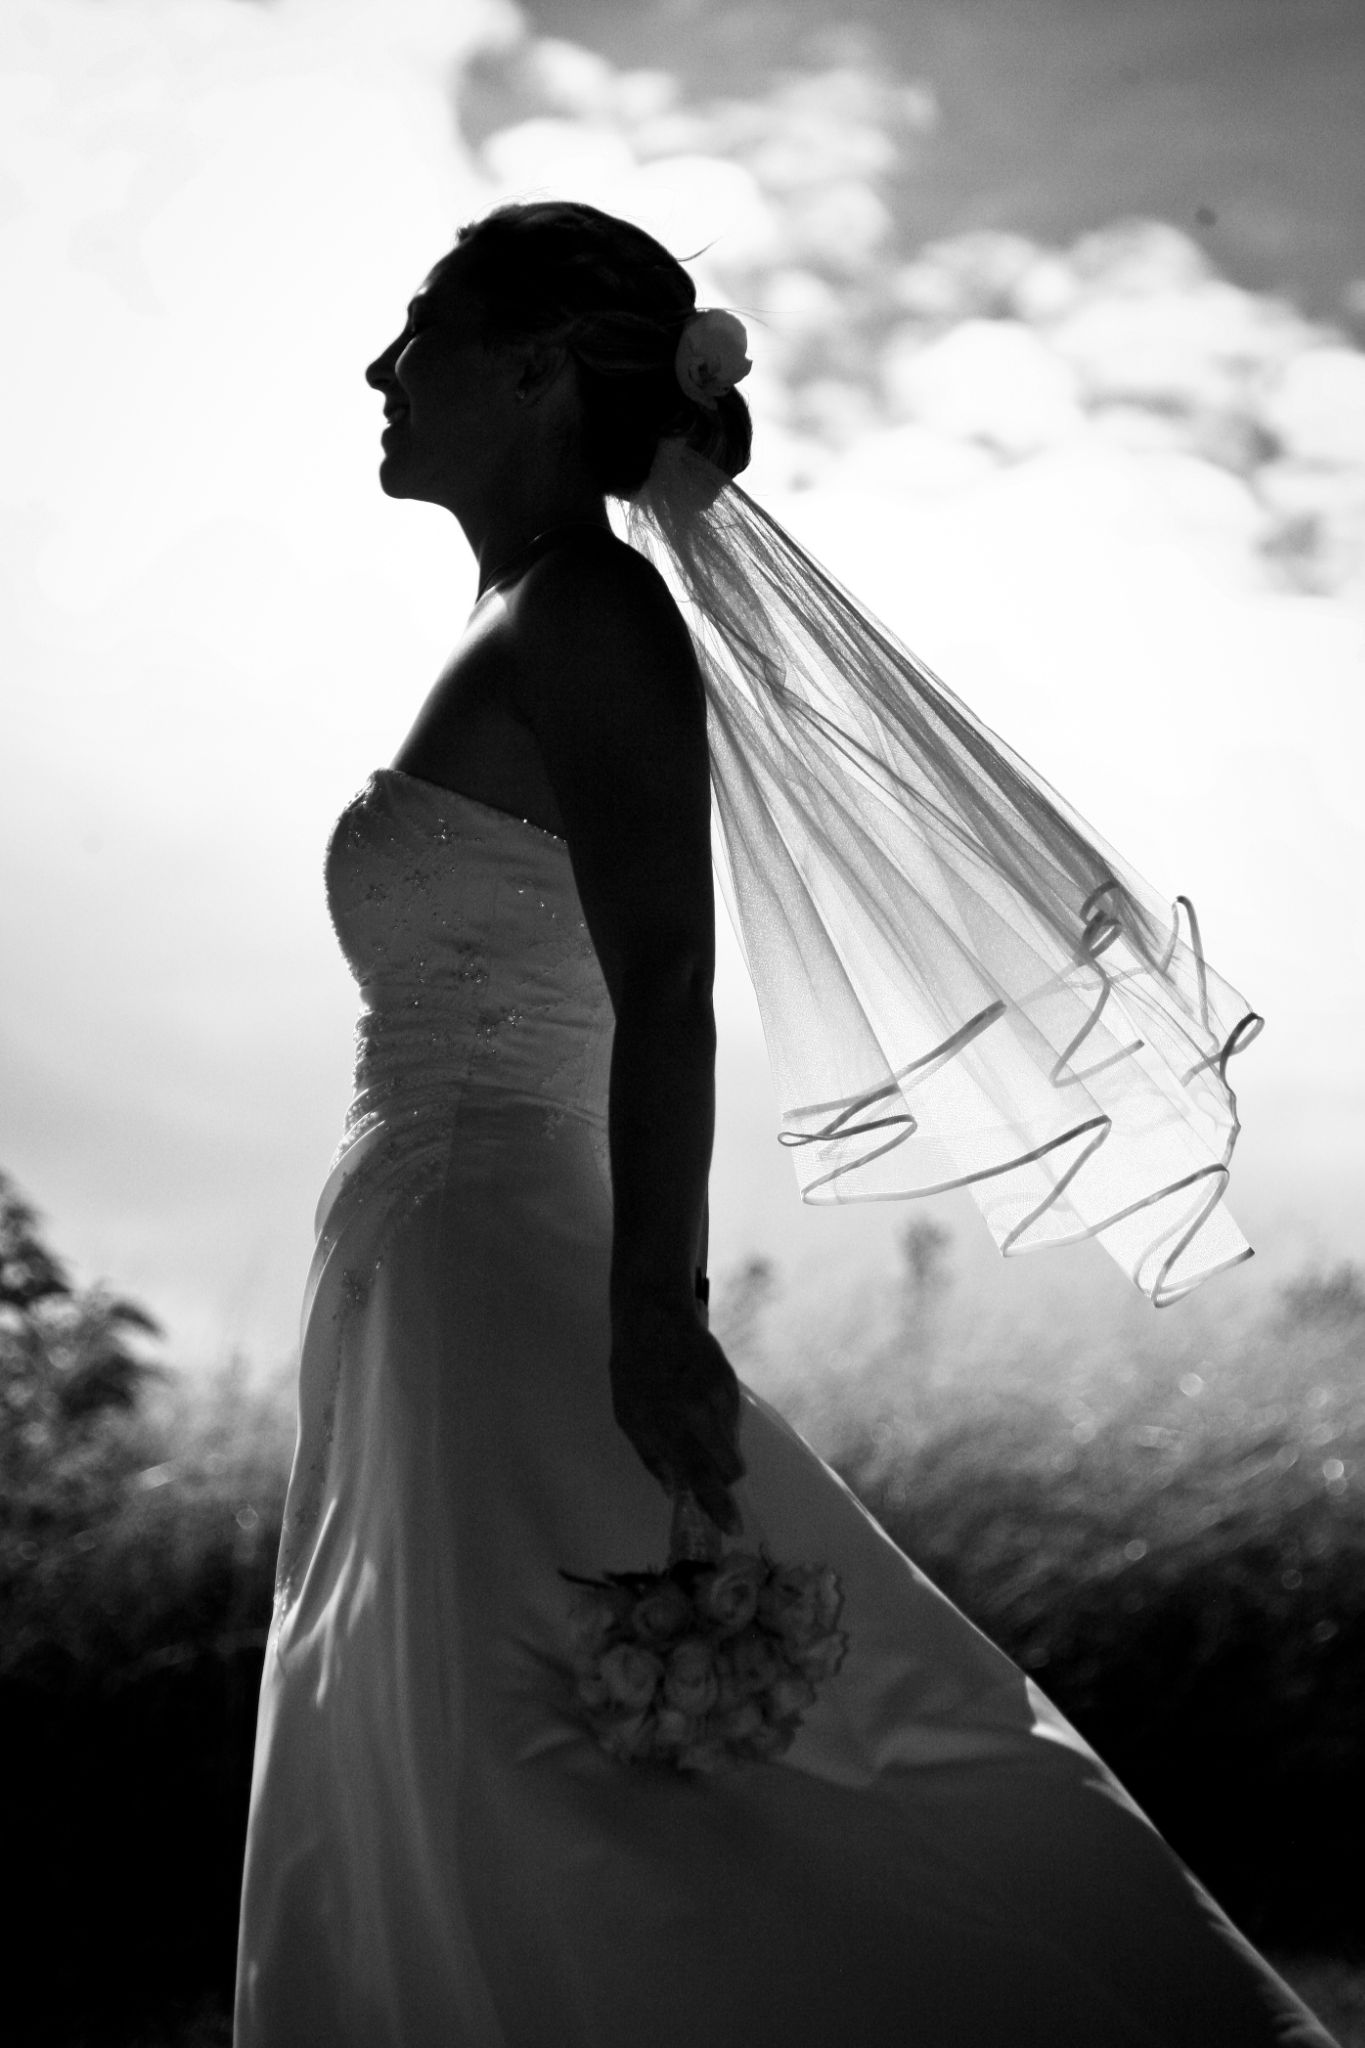 Silhouette 2 by Andrew Howes